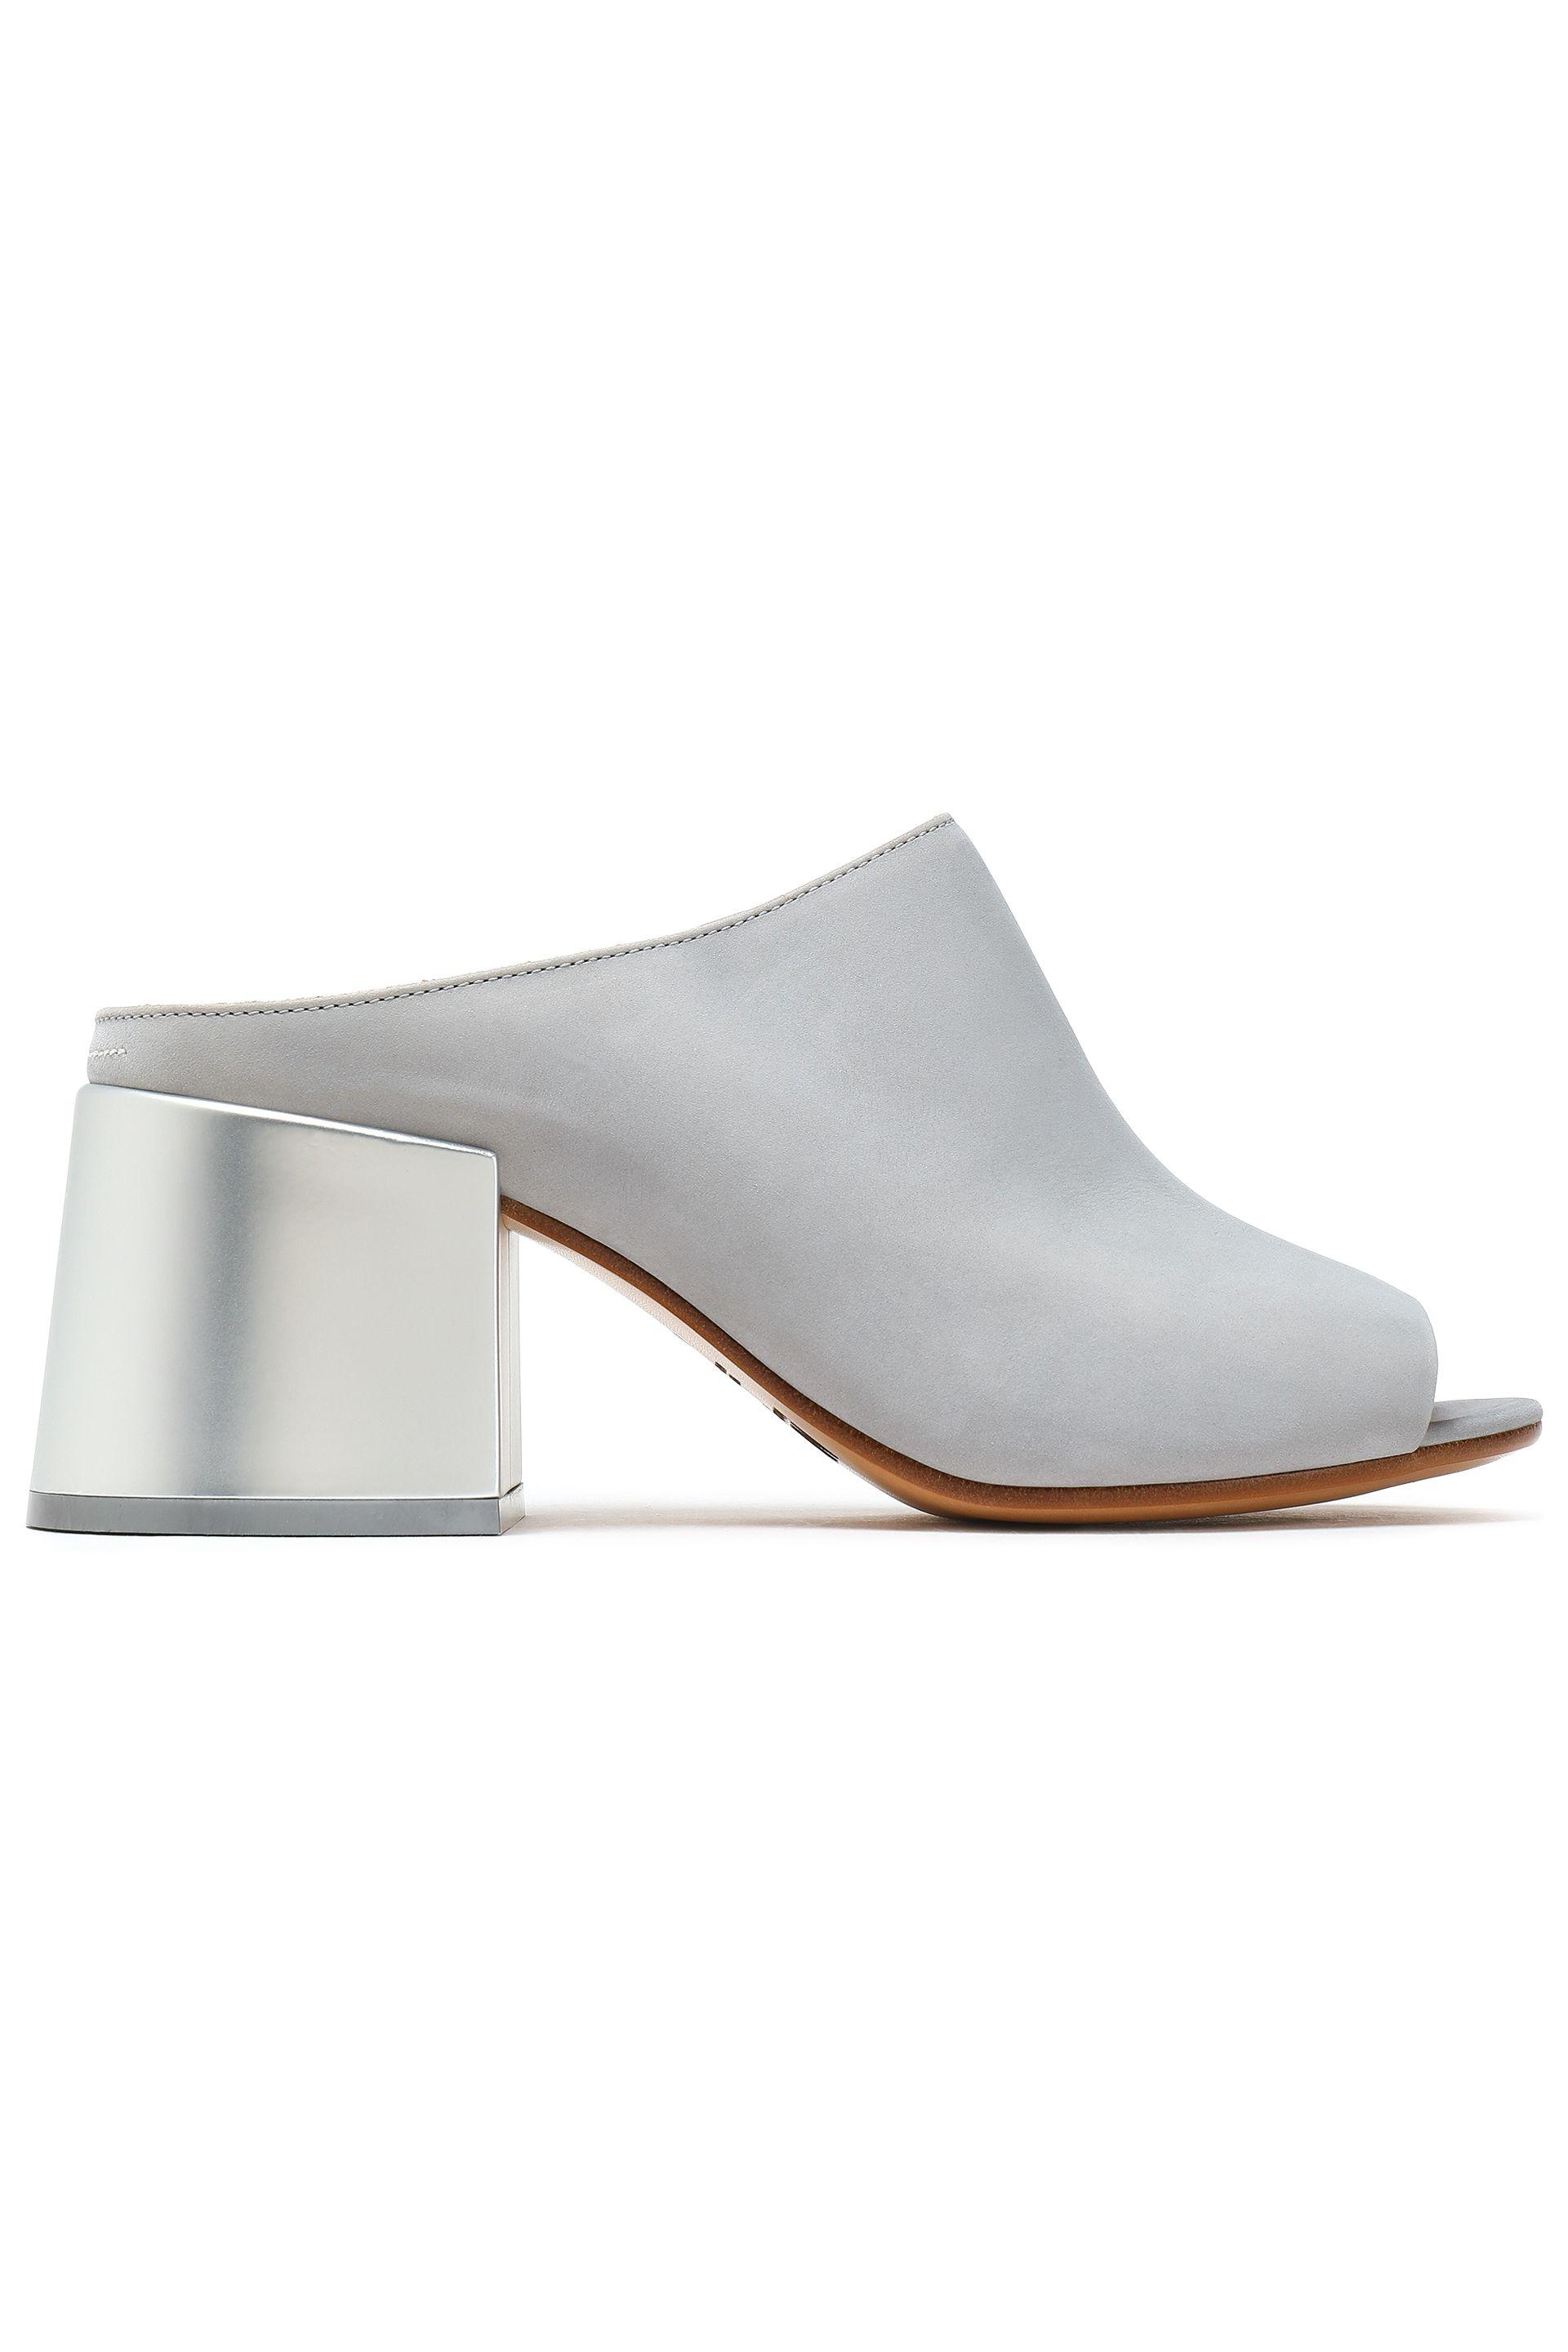 adb4ce0e7d6d Mm6 By Maison Martin Margiela Suede Mules in Gray - Save ...